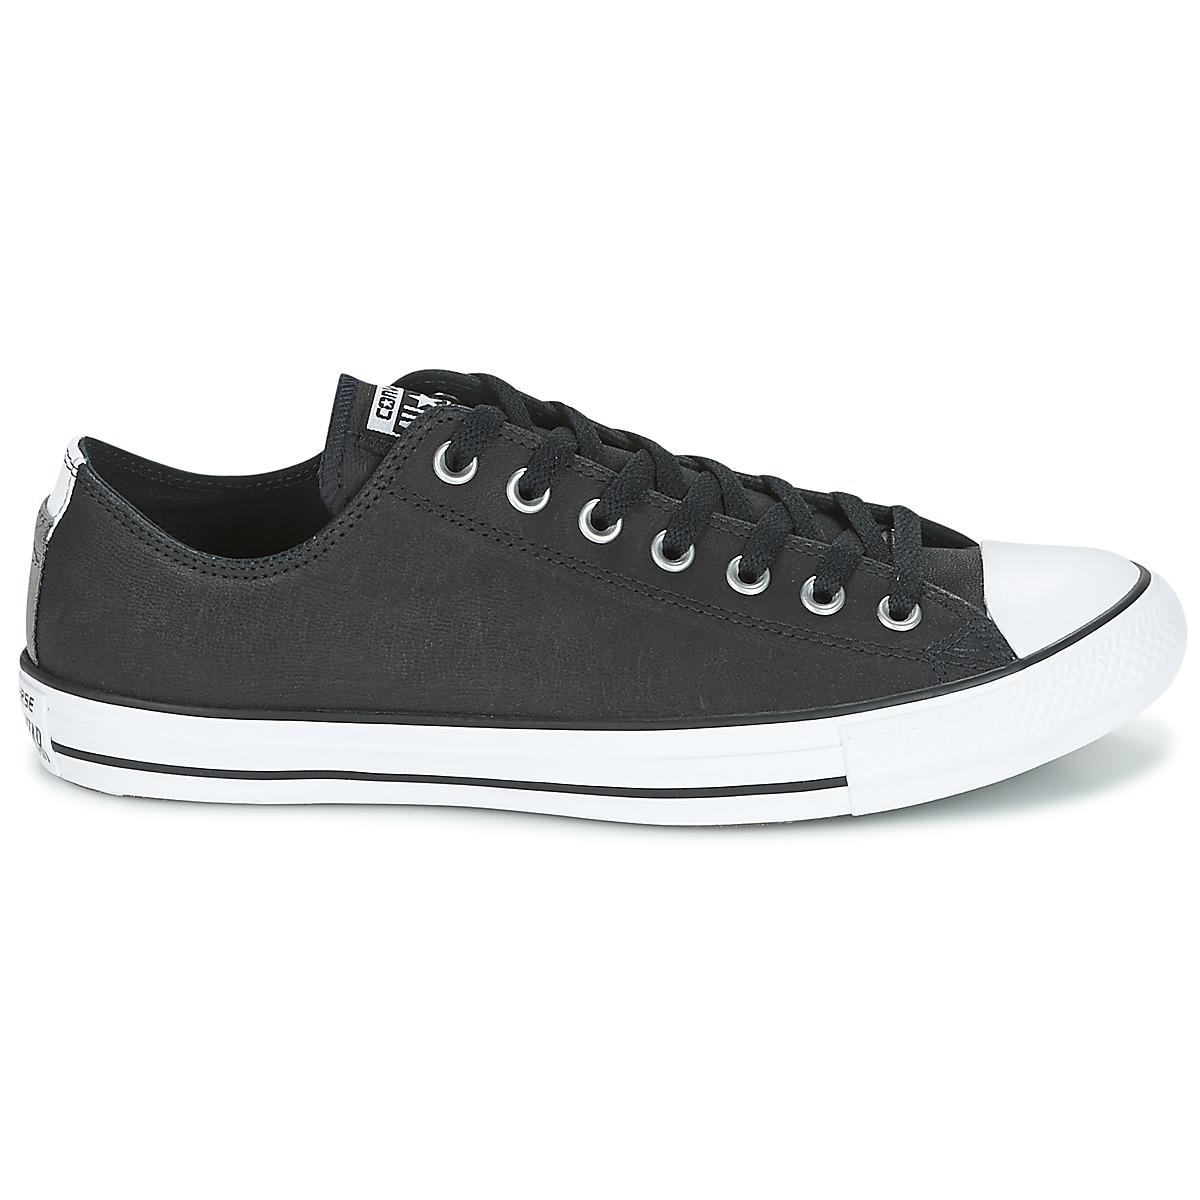 0c7d6497ab4 Converse - Black Chuck Taylor All Star Ox Fashion Leather Shoes (trainers)  for Men. View fullscreen